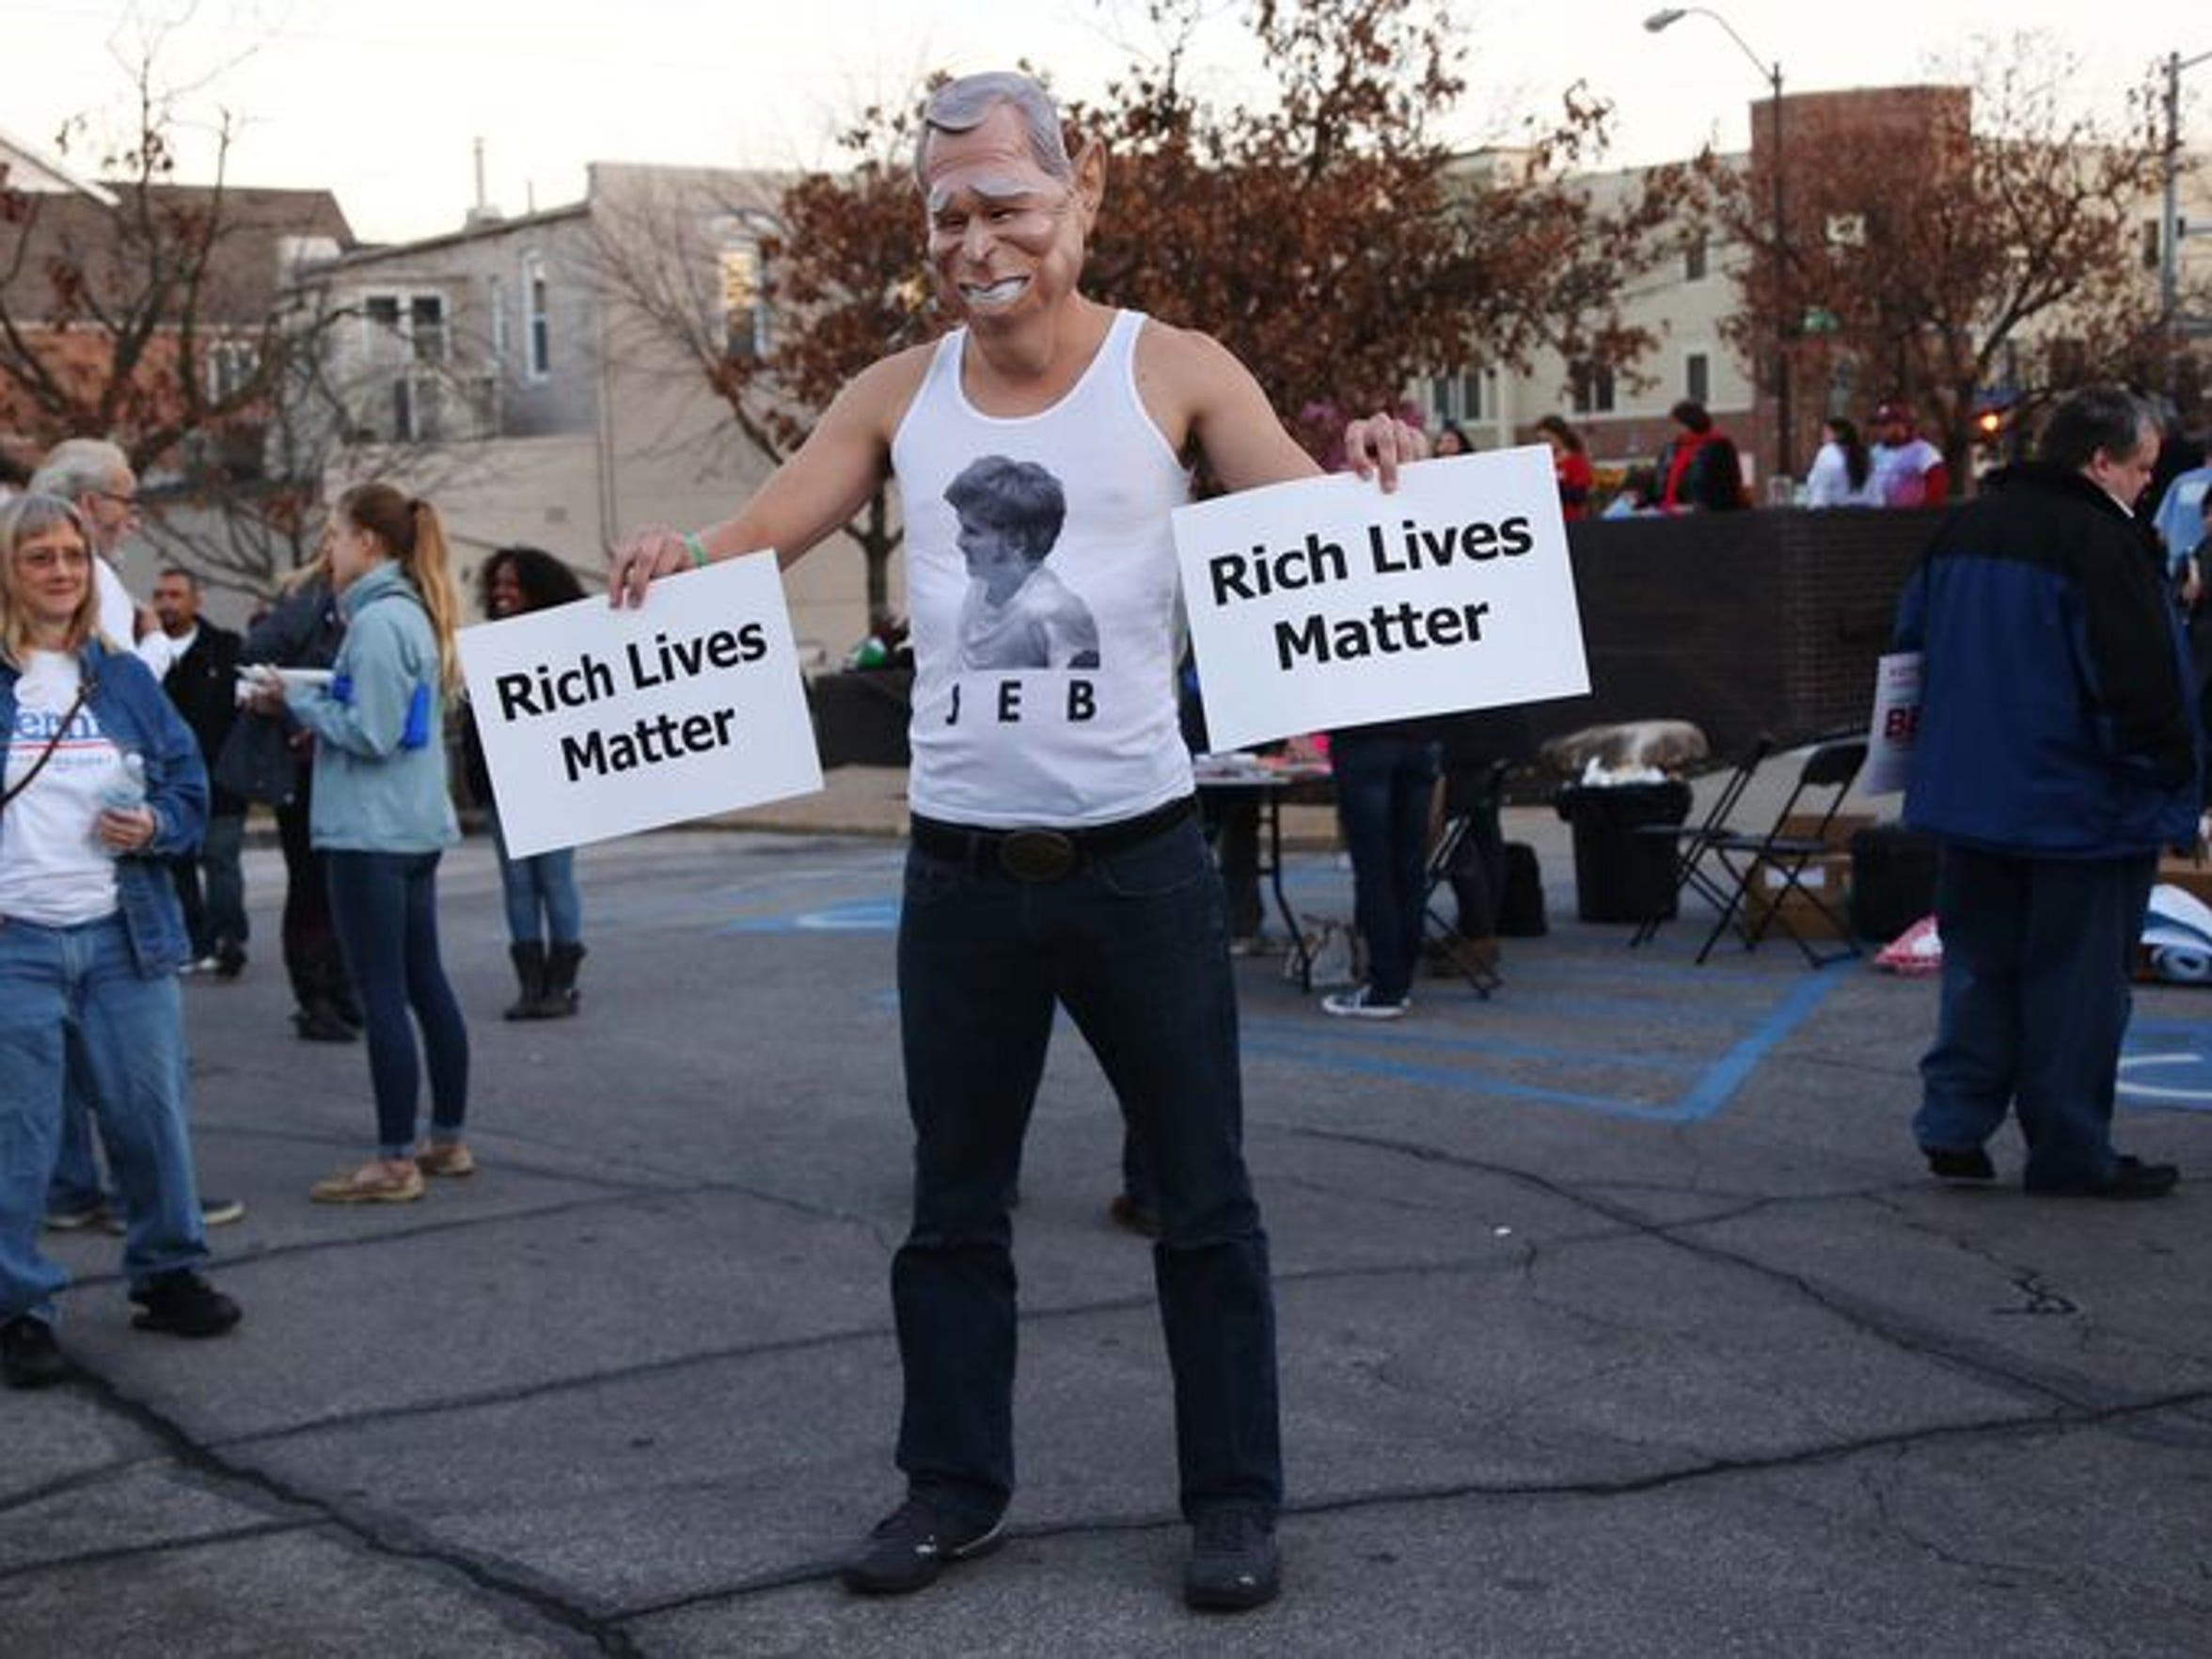 A man impersonating Jeb Bush attends a rally for Bernie Sanders near the Drake University campus before the Democratic Debate on Saturday.